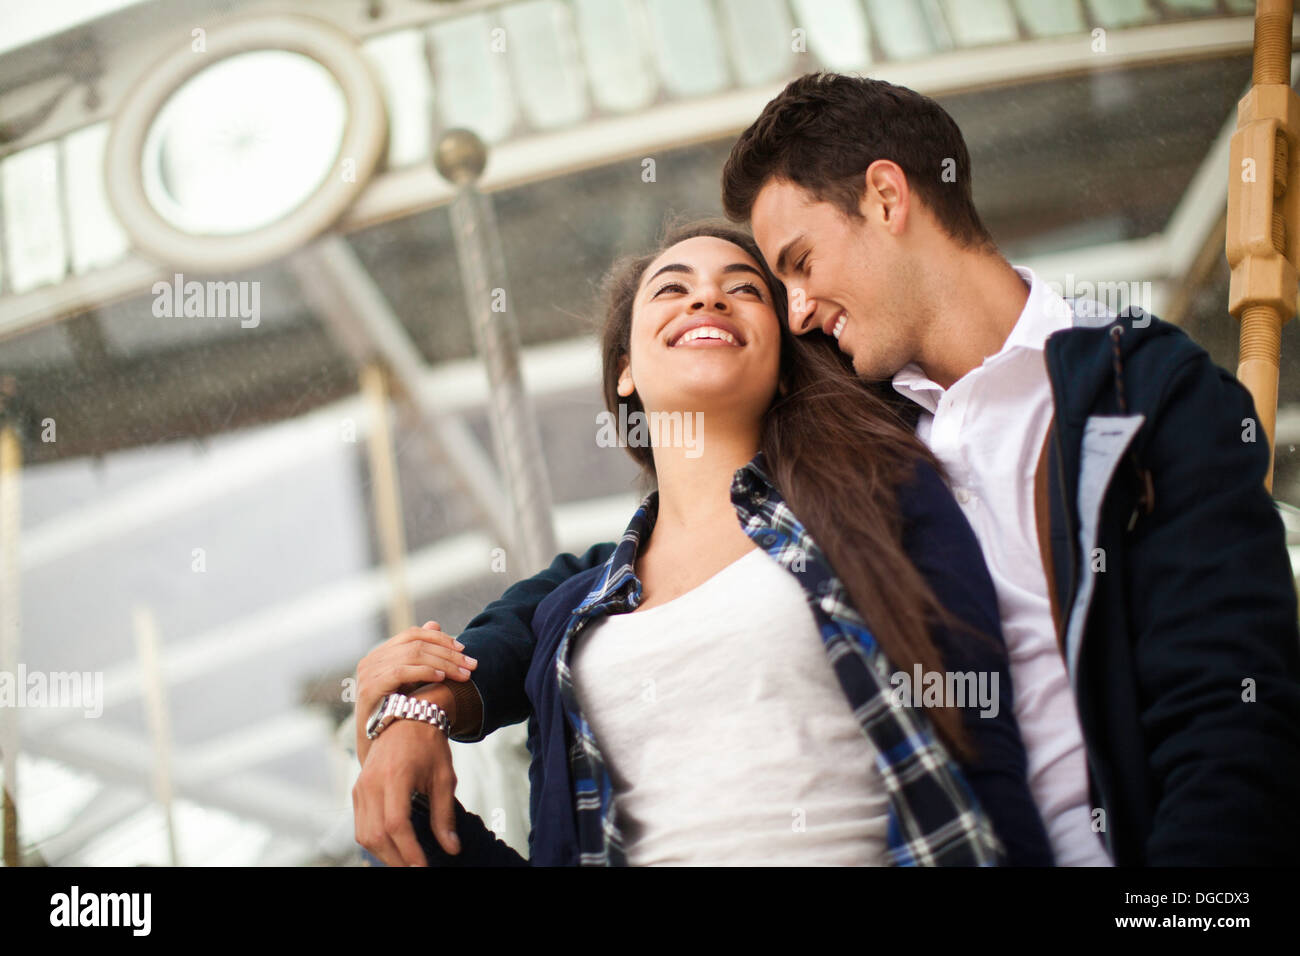 Young man with arm around woman, smiling Stock Photo